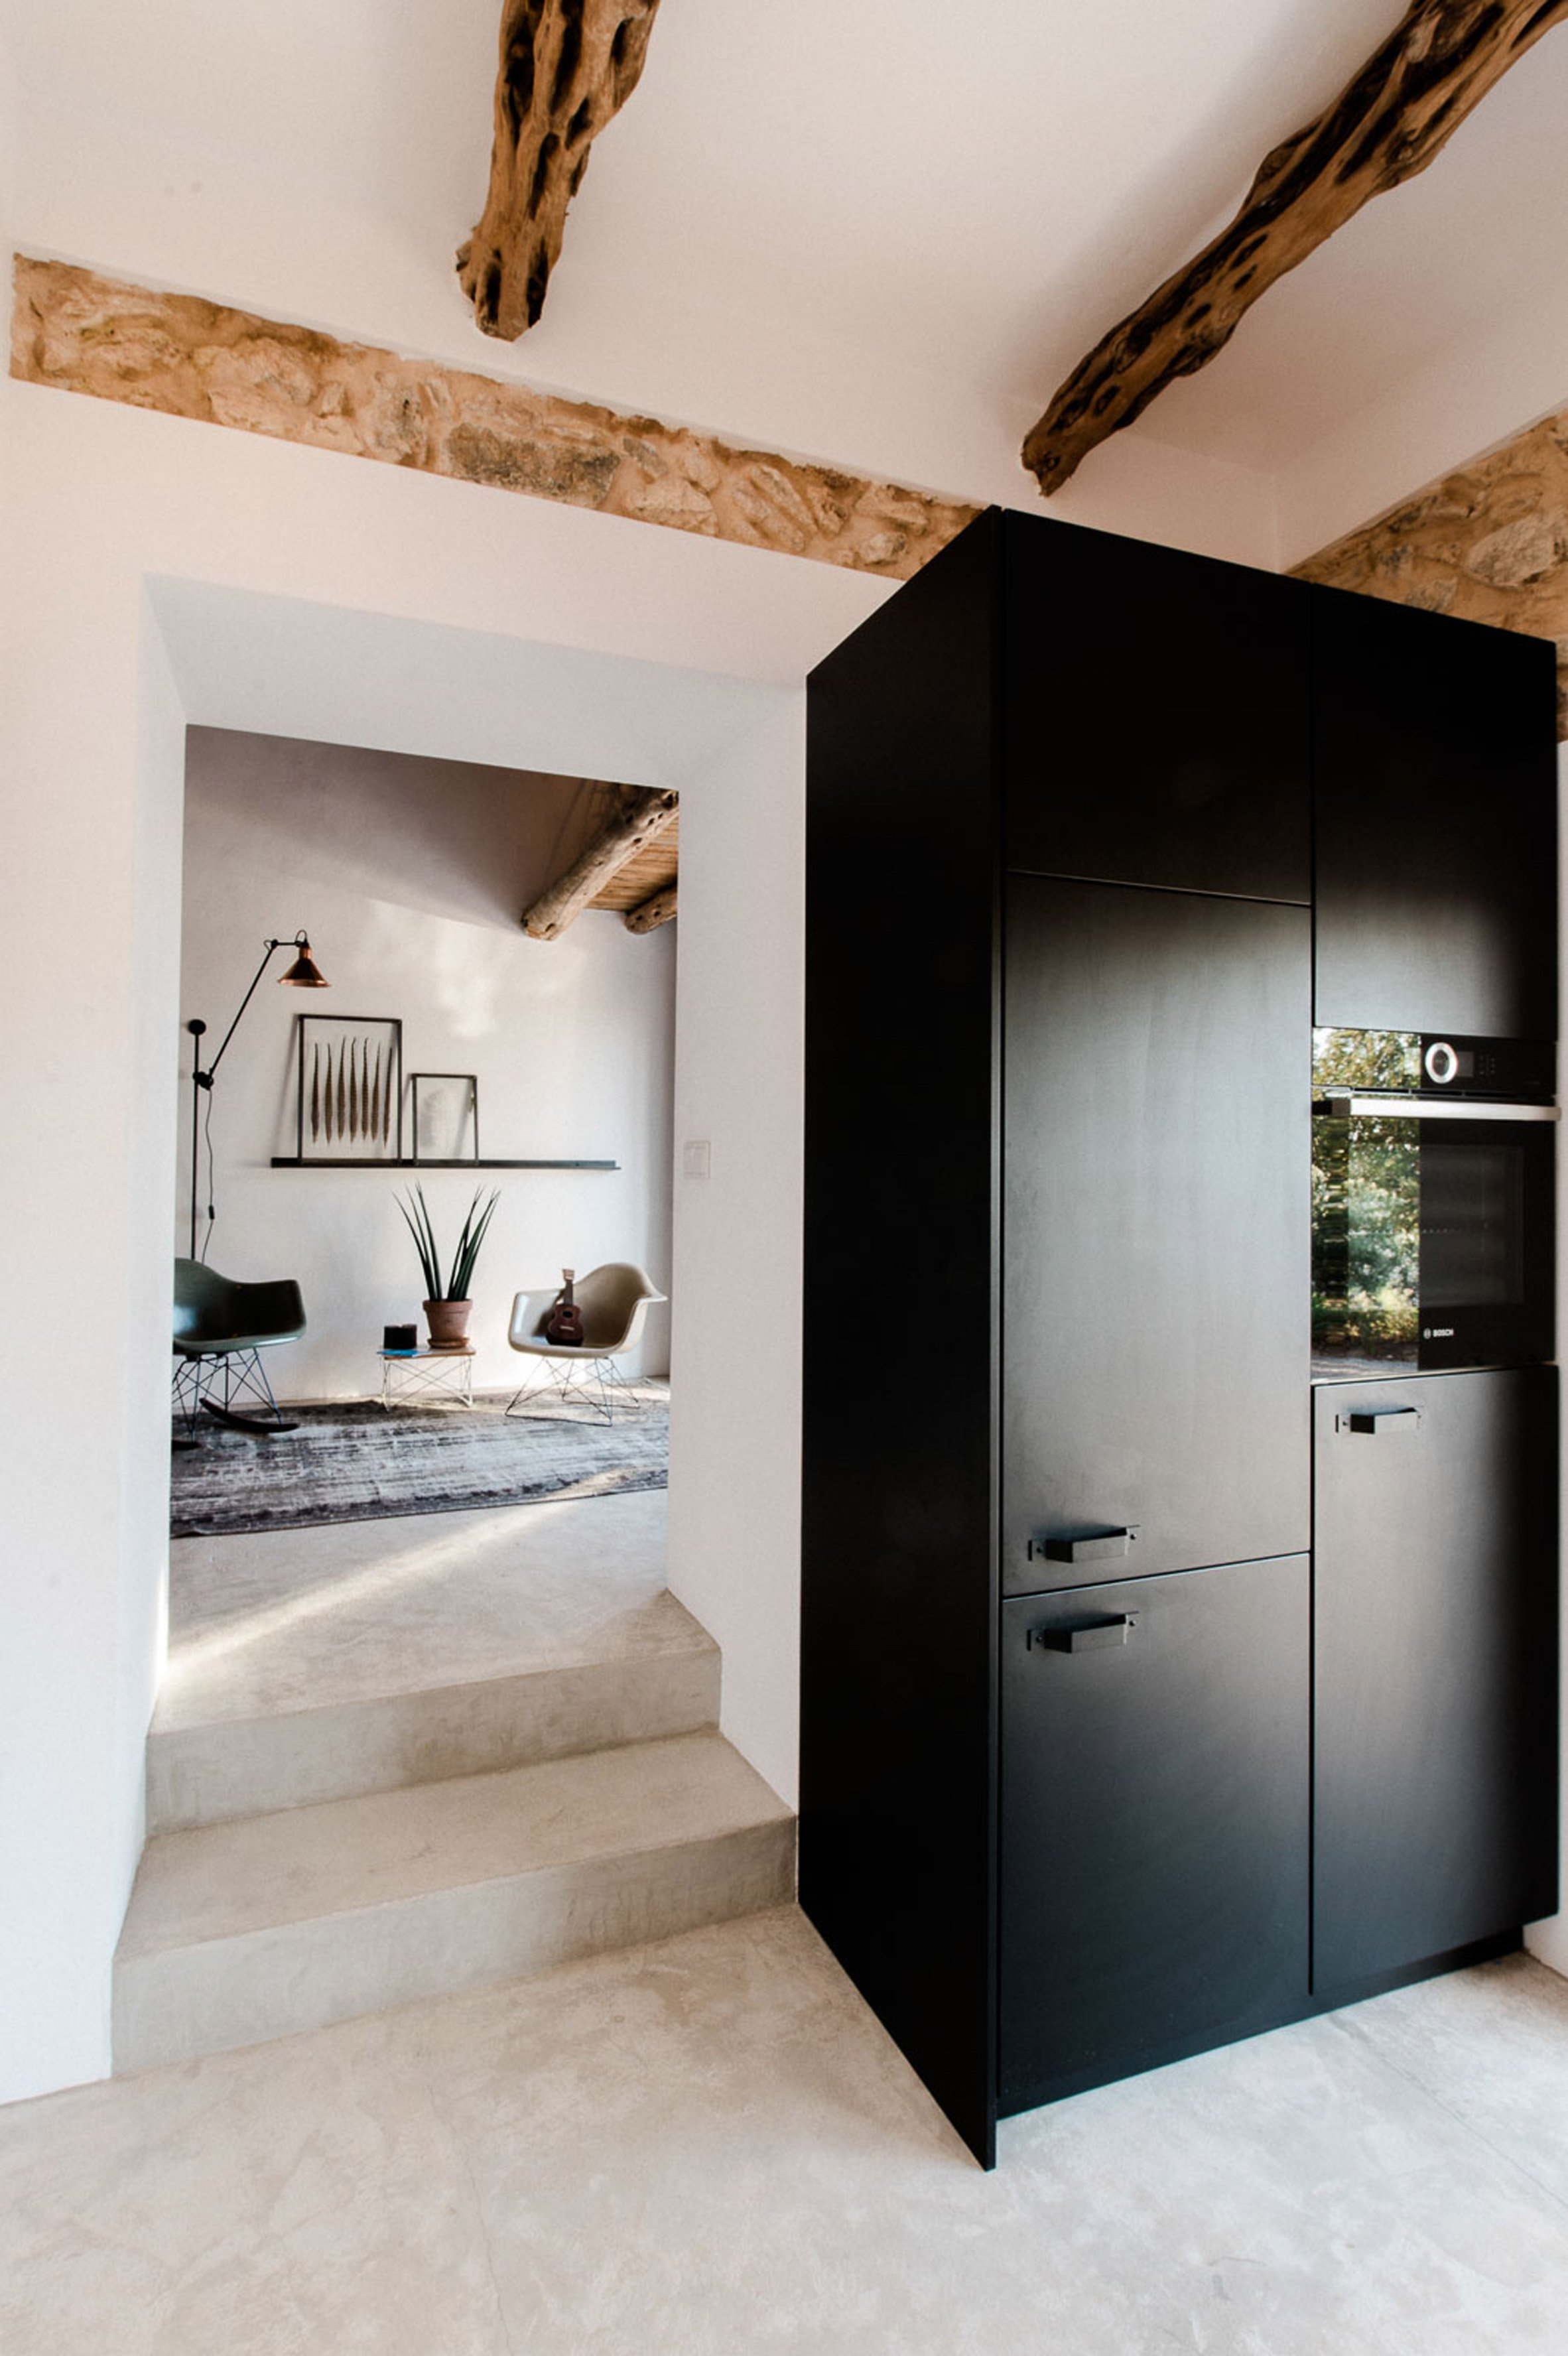 ibiza-campo-standard-studio-and-ibiza-interiors-residential-houses-interiors-spain_dezeen_2364_col_5.jpg